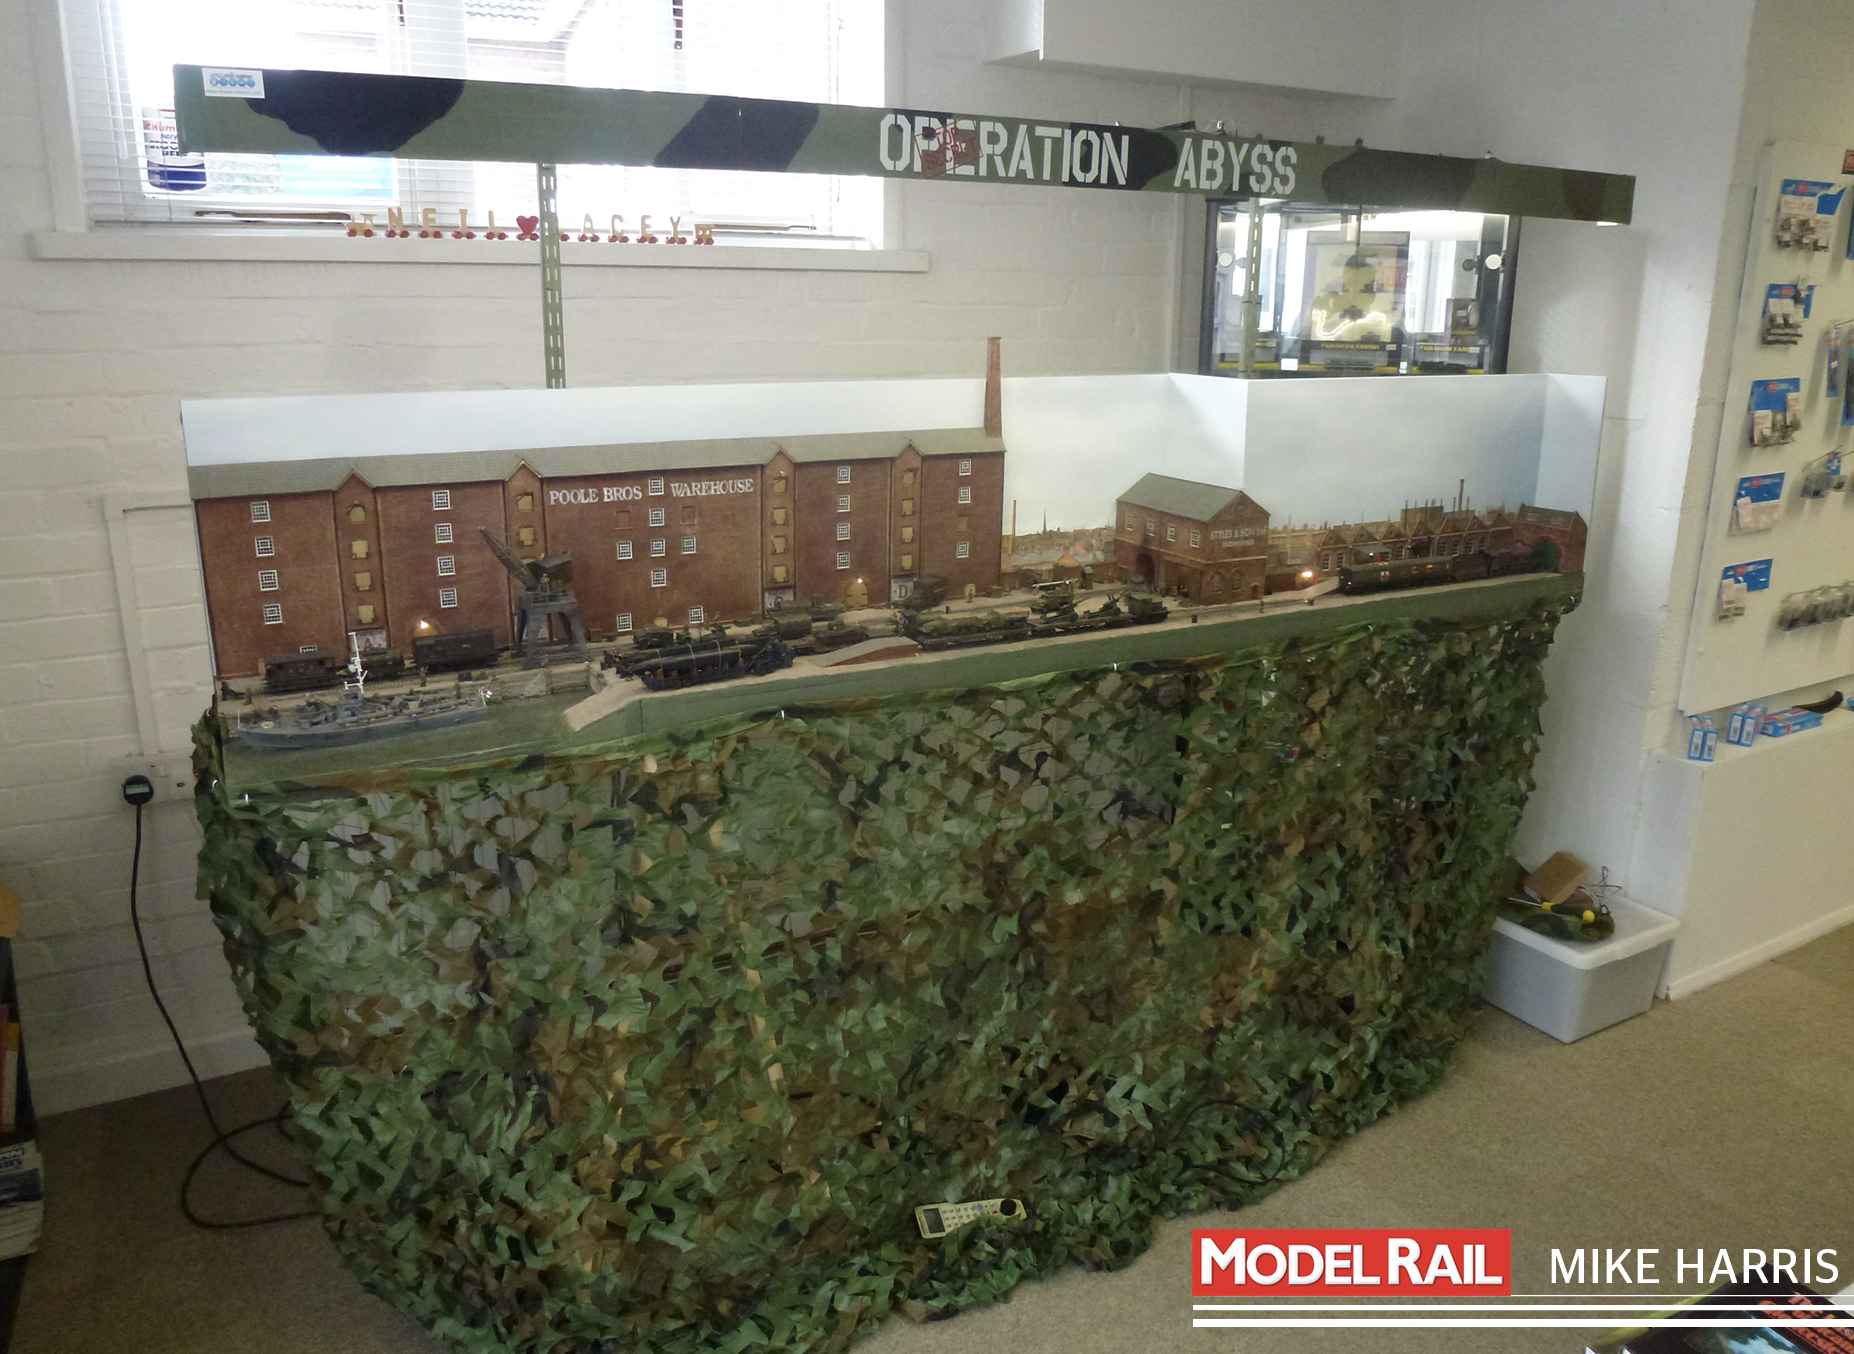 Camouflage netting hides the wooden trestles on which the layout stands. MIKE HARRIS